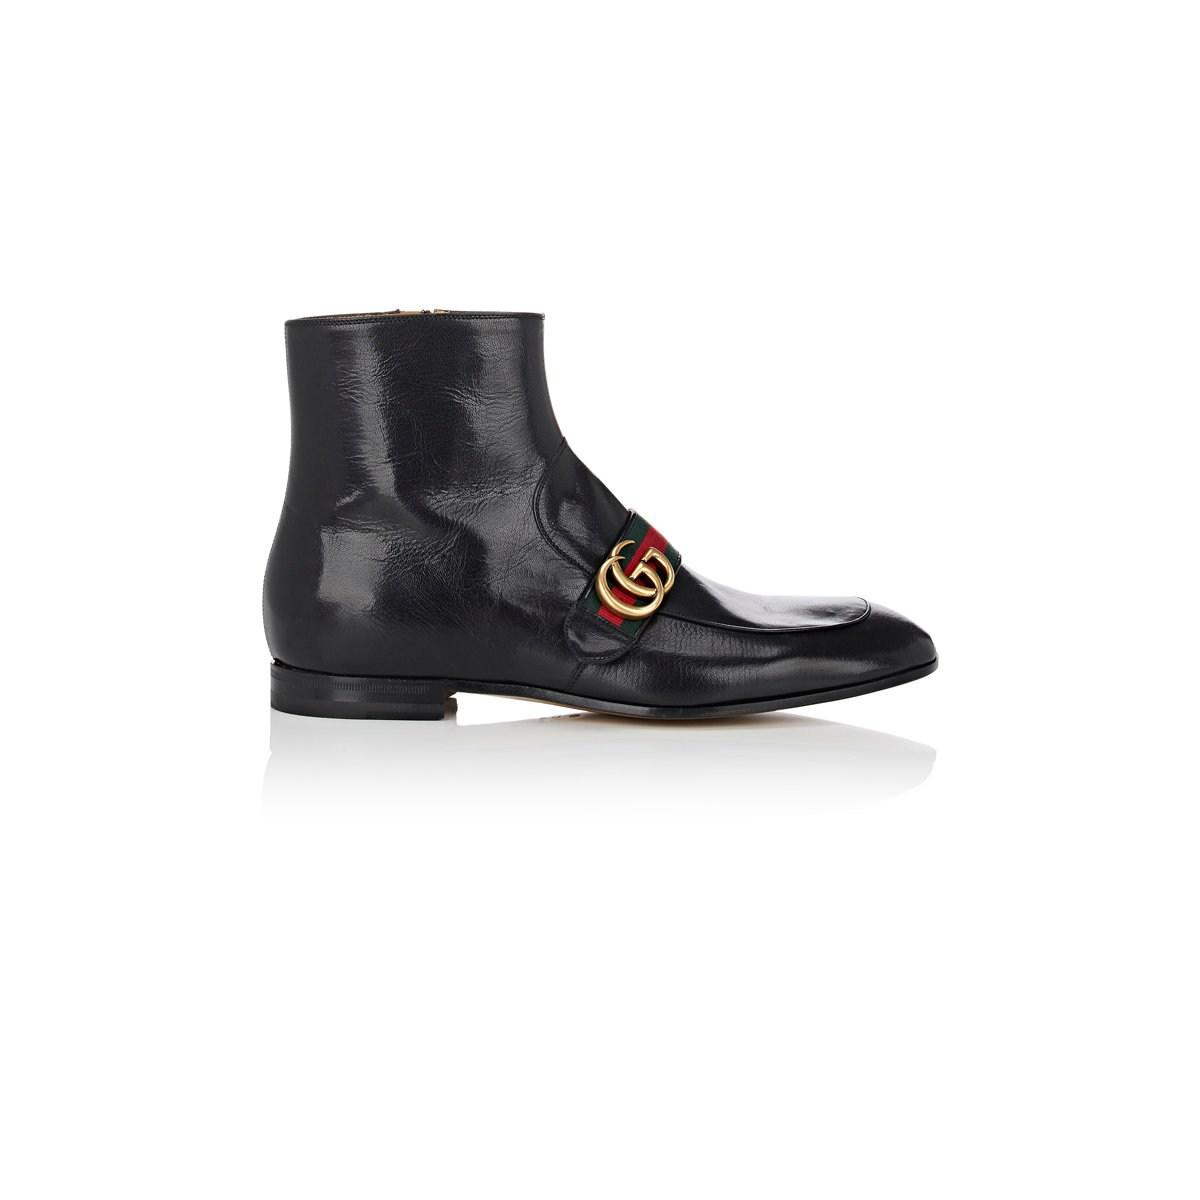 43c0ecfda56 Lyst - Gucci Donnie Leather Boots in Black for Men